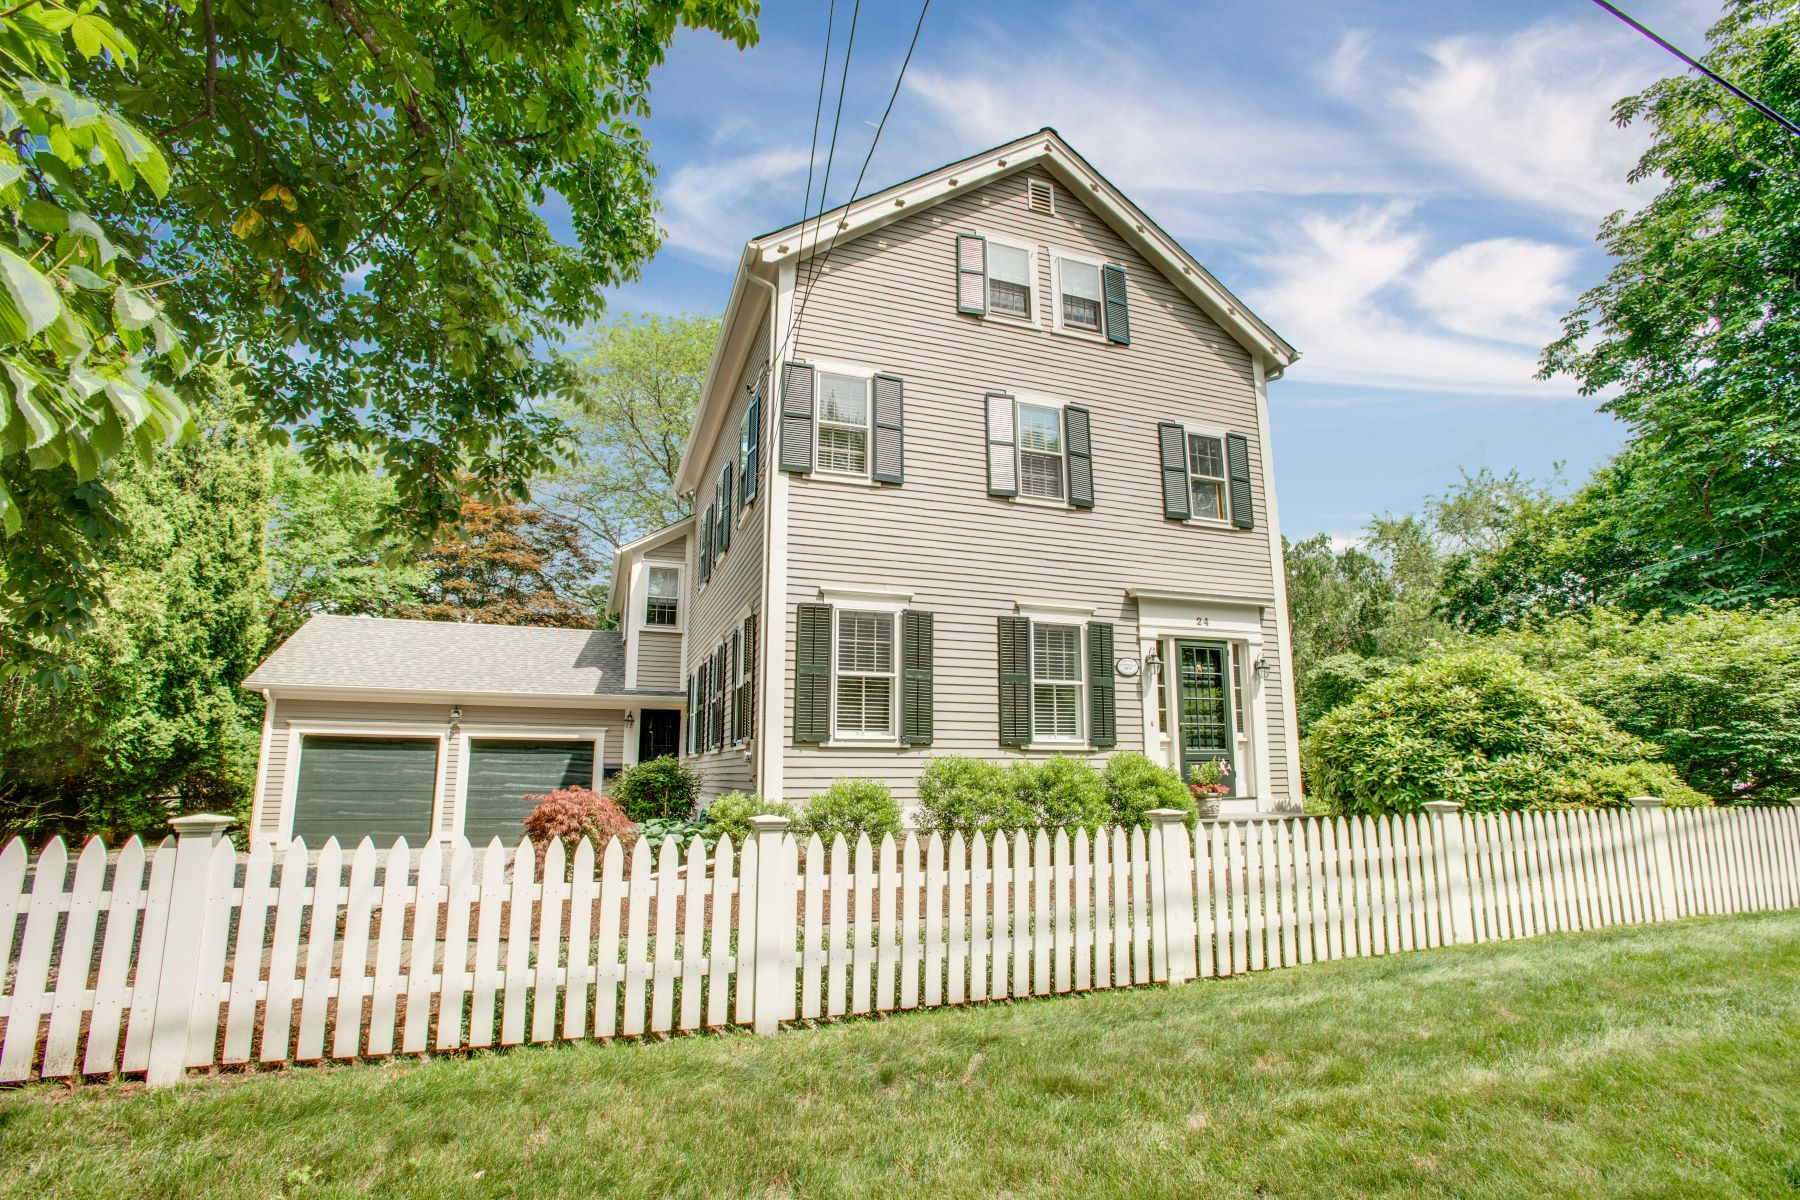 Single Family Homes for Sale at 24 Adams Point Road, Barrington, RI 24 Adams Point Road Barrington, Rhode Island 02806 United States